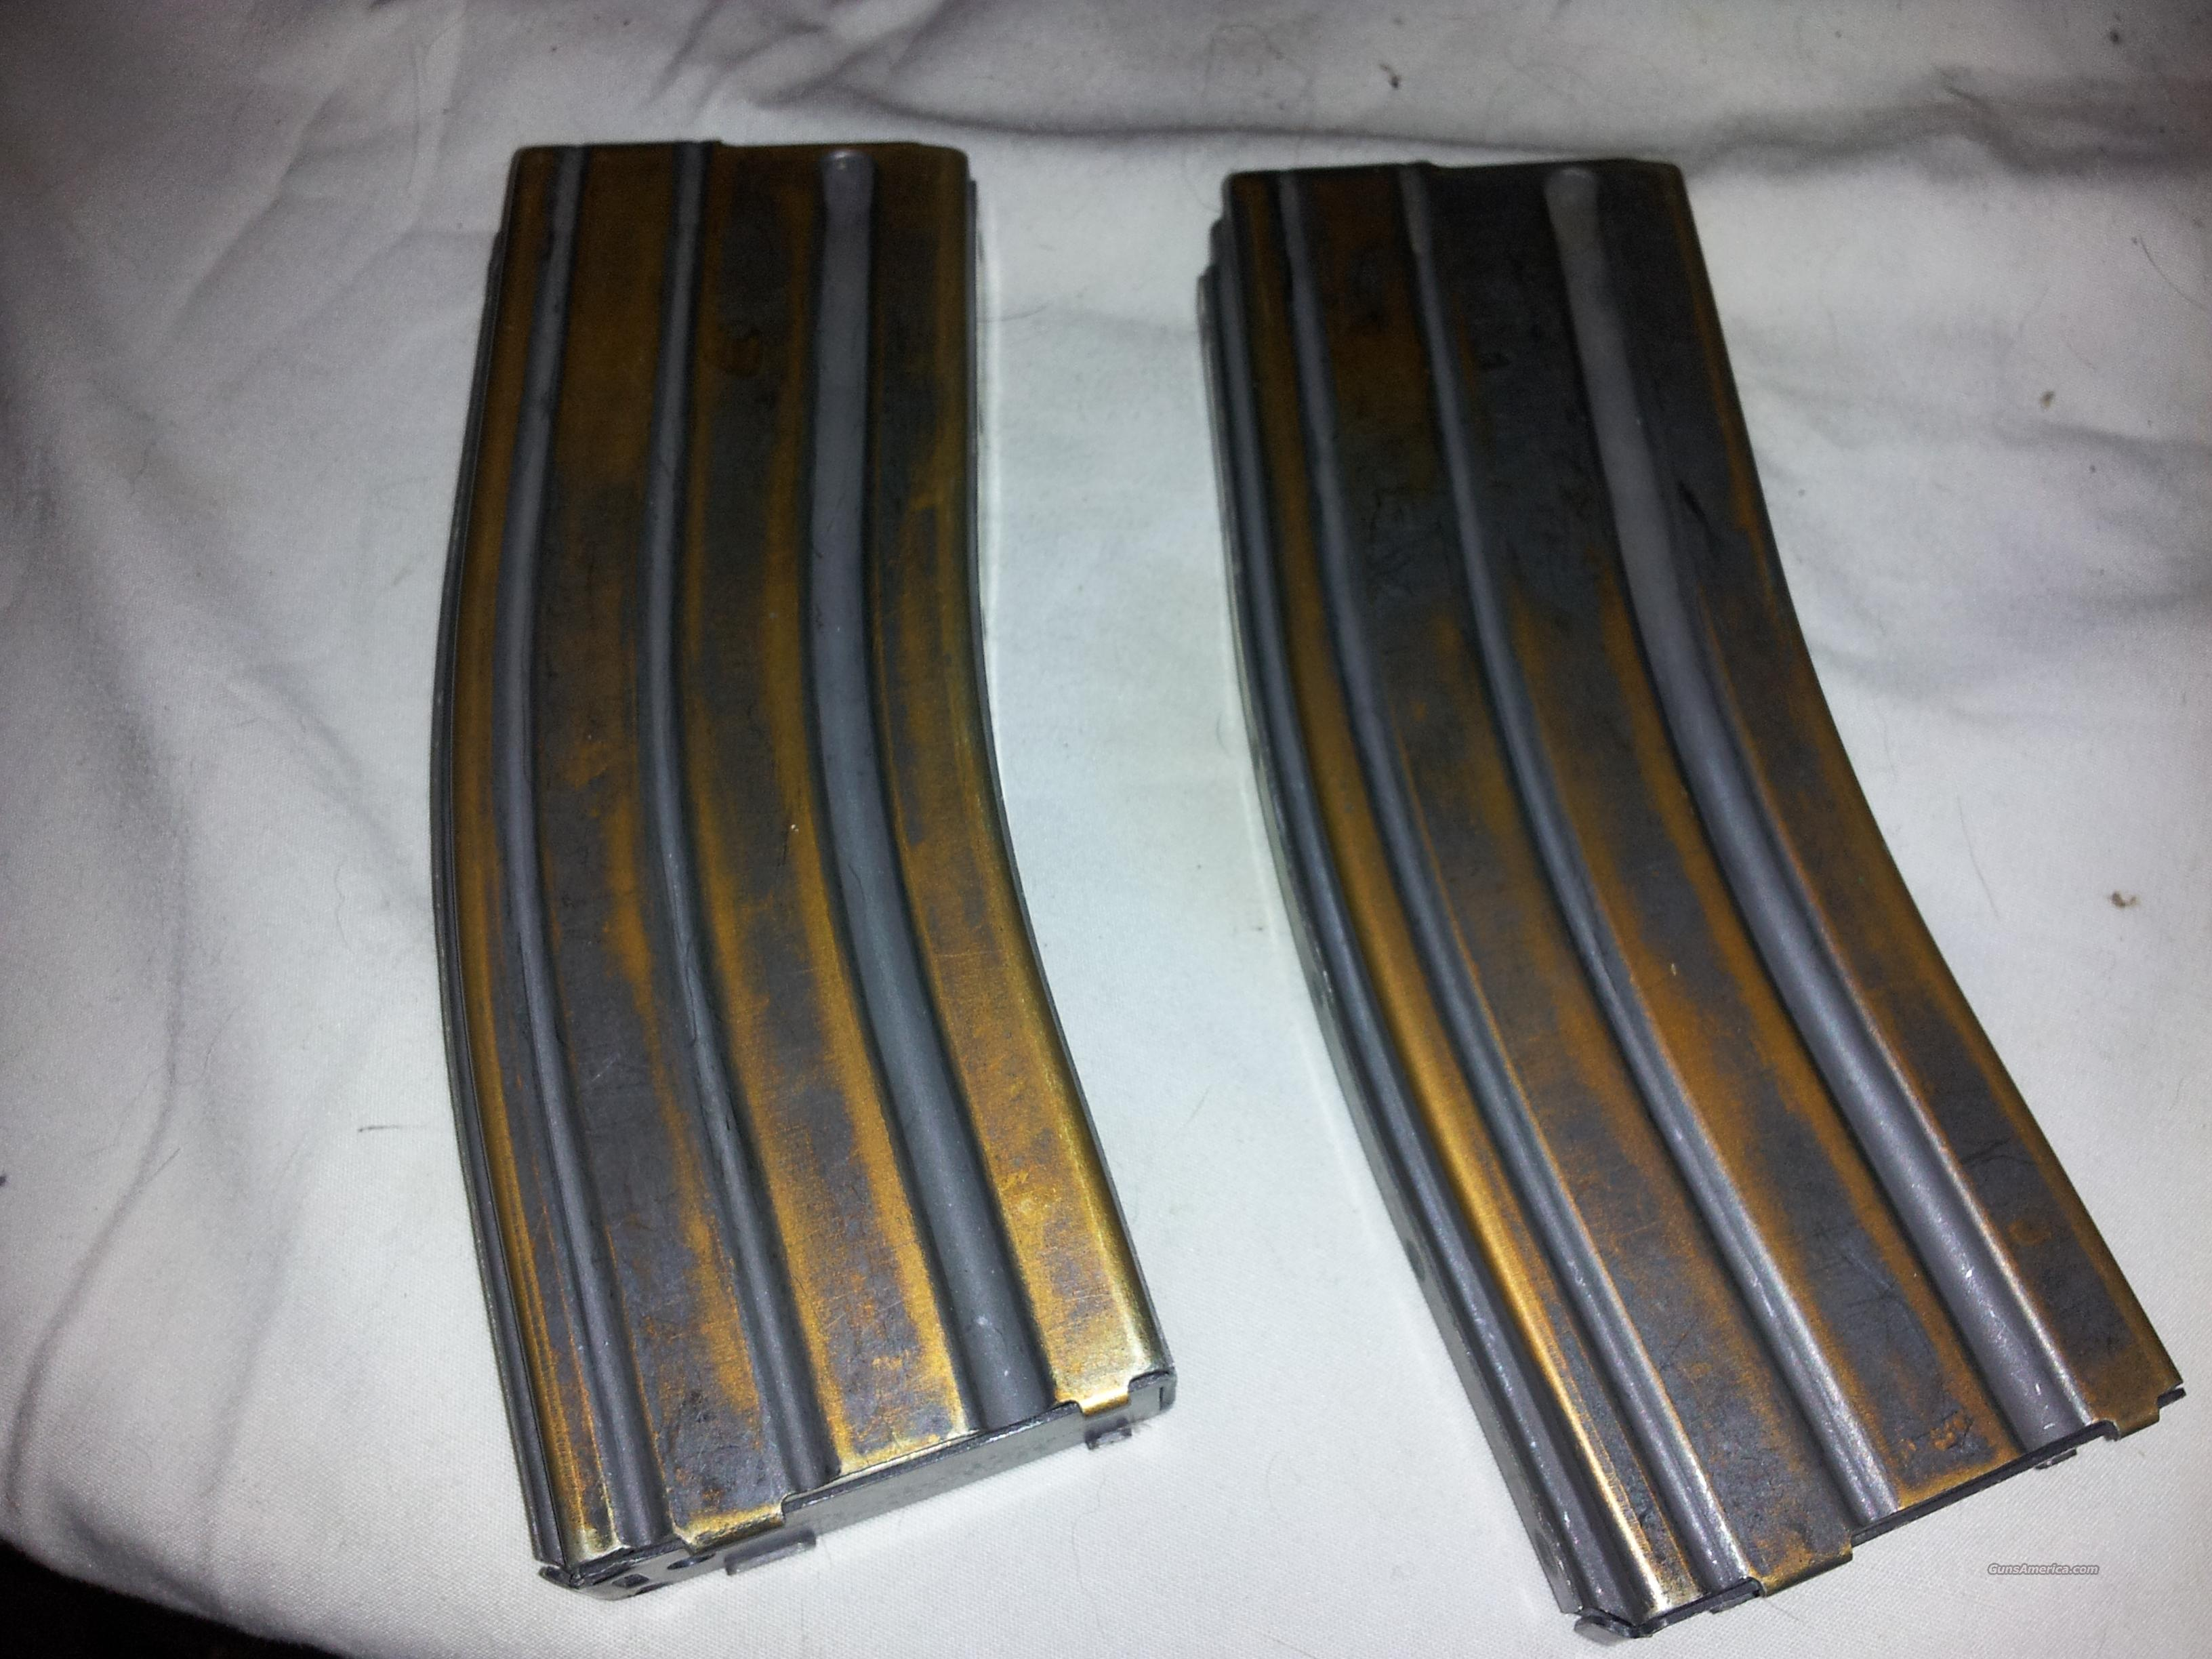 Lot of 2 Colt AR15/M4 30Rd Magazines  Non-Guns > Magazines & Clips > Rifle Magazines > AR-15 Type